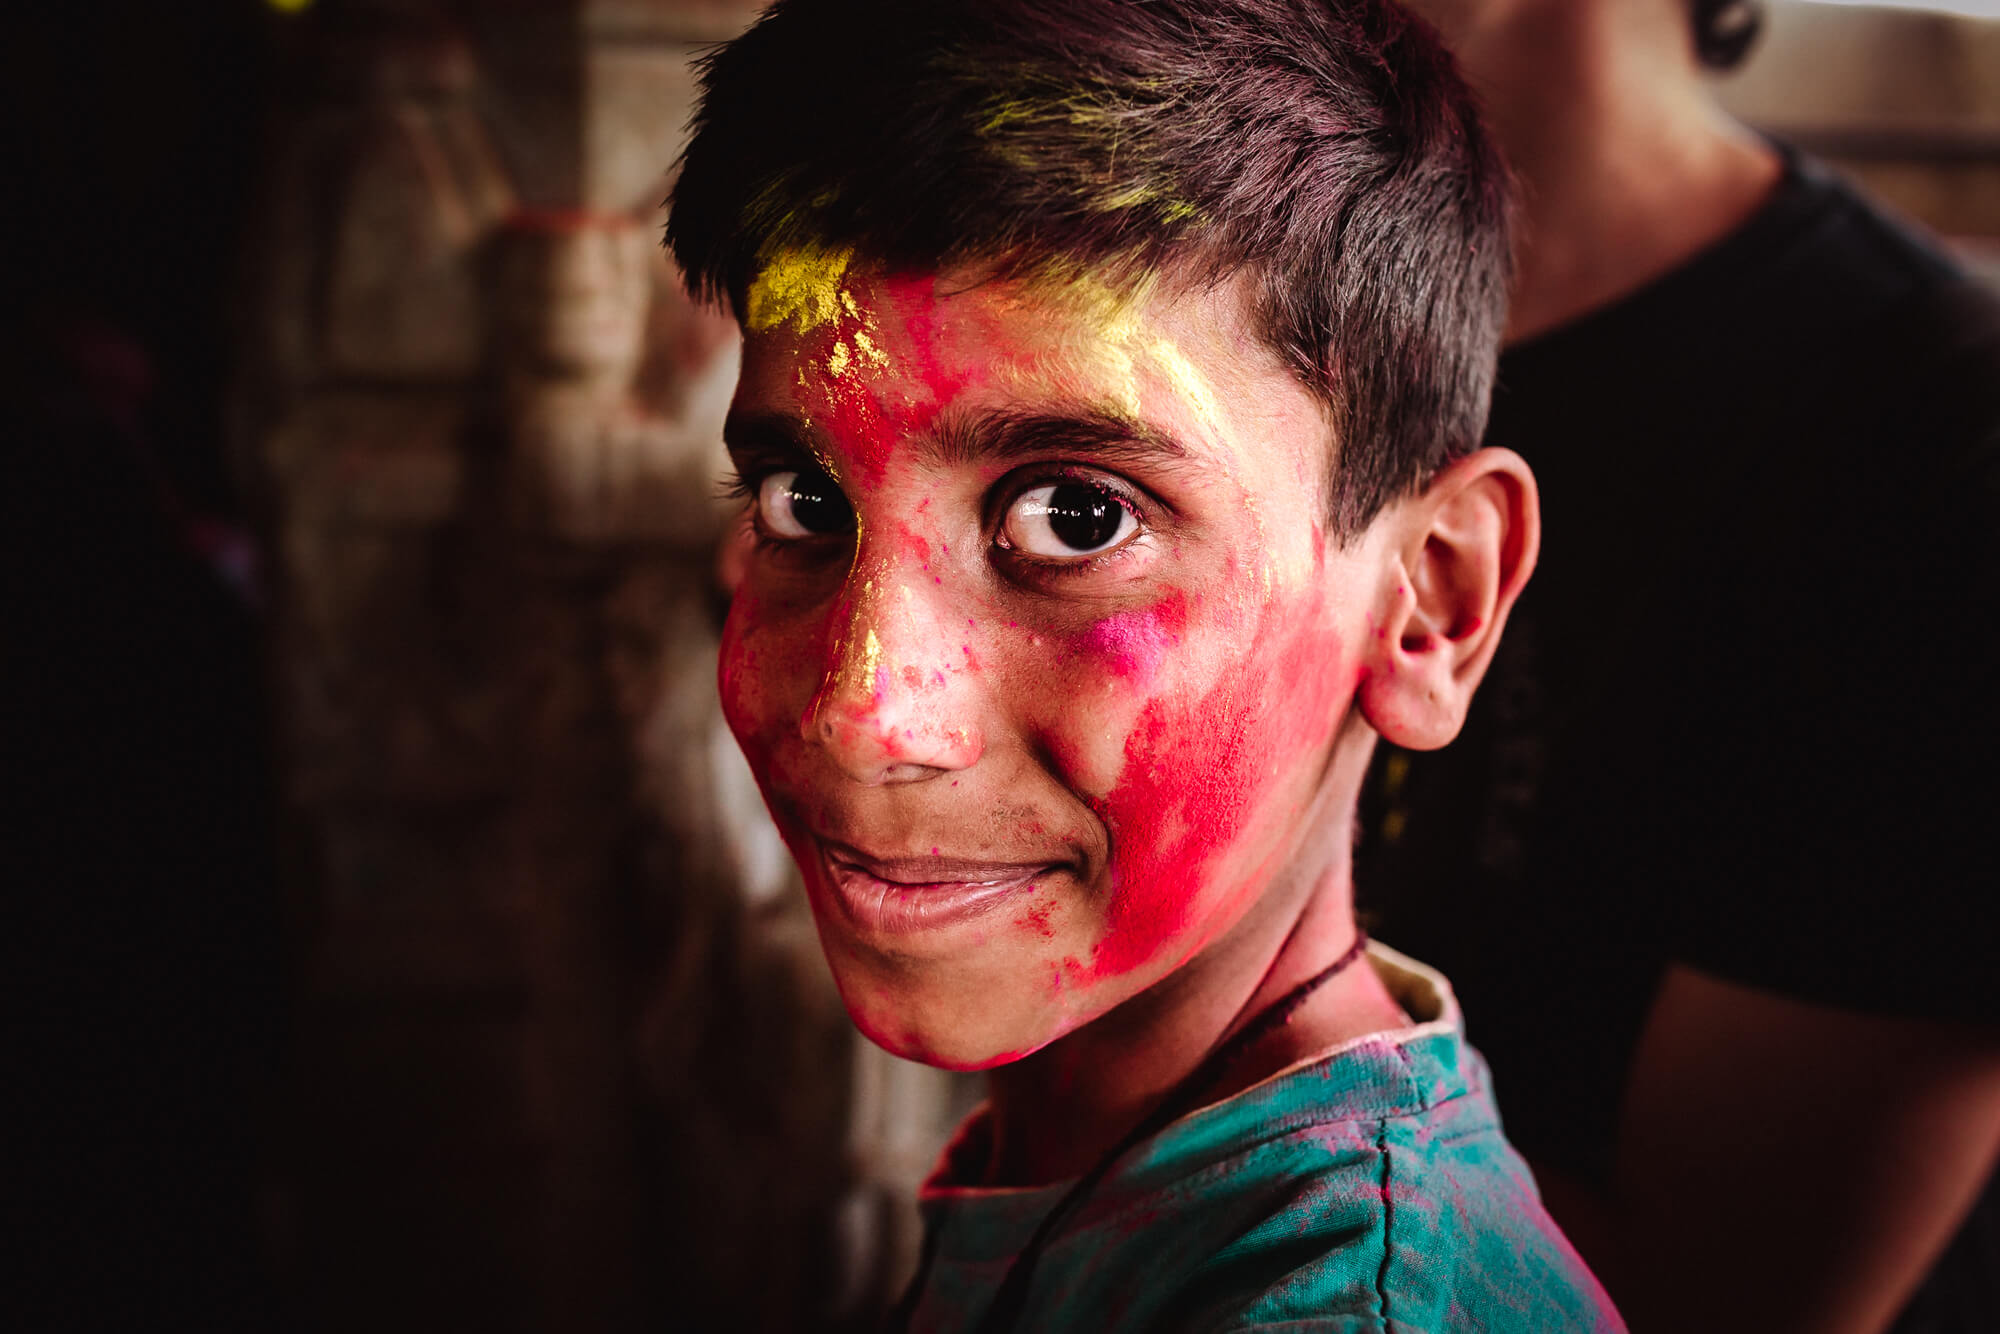 boy with the face full of colours